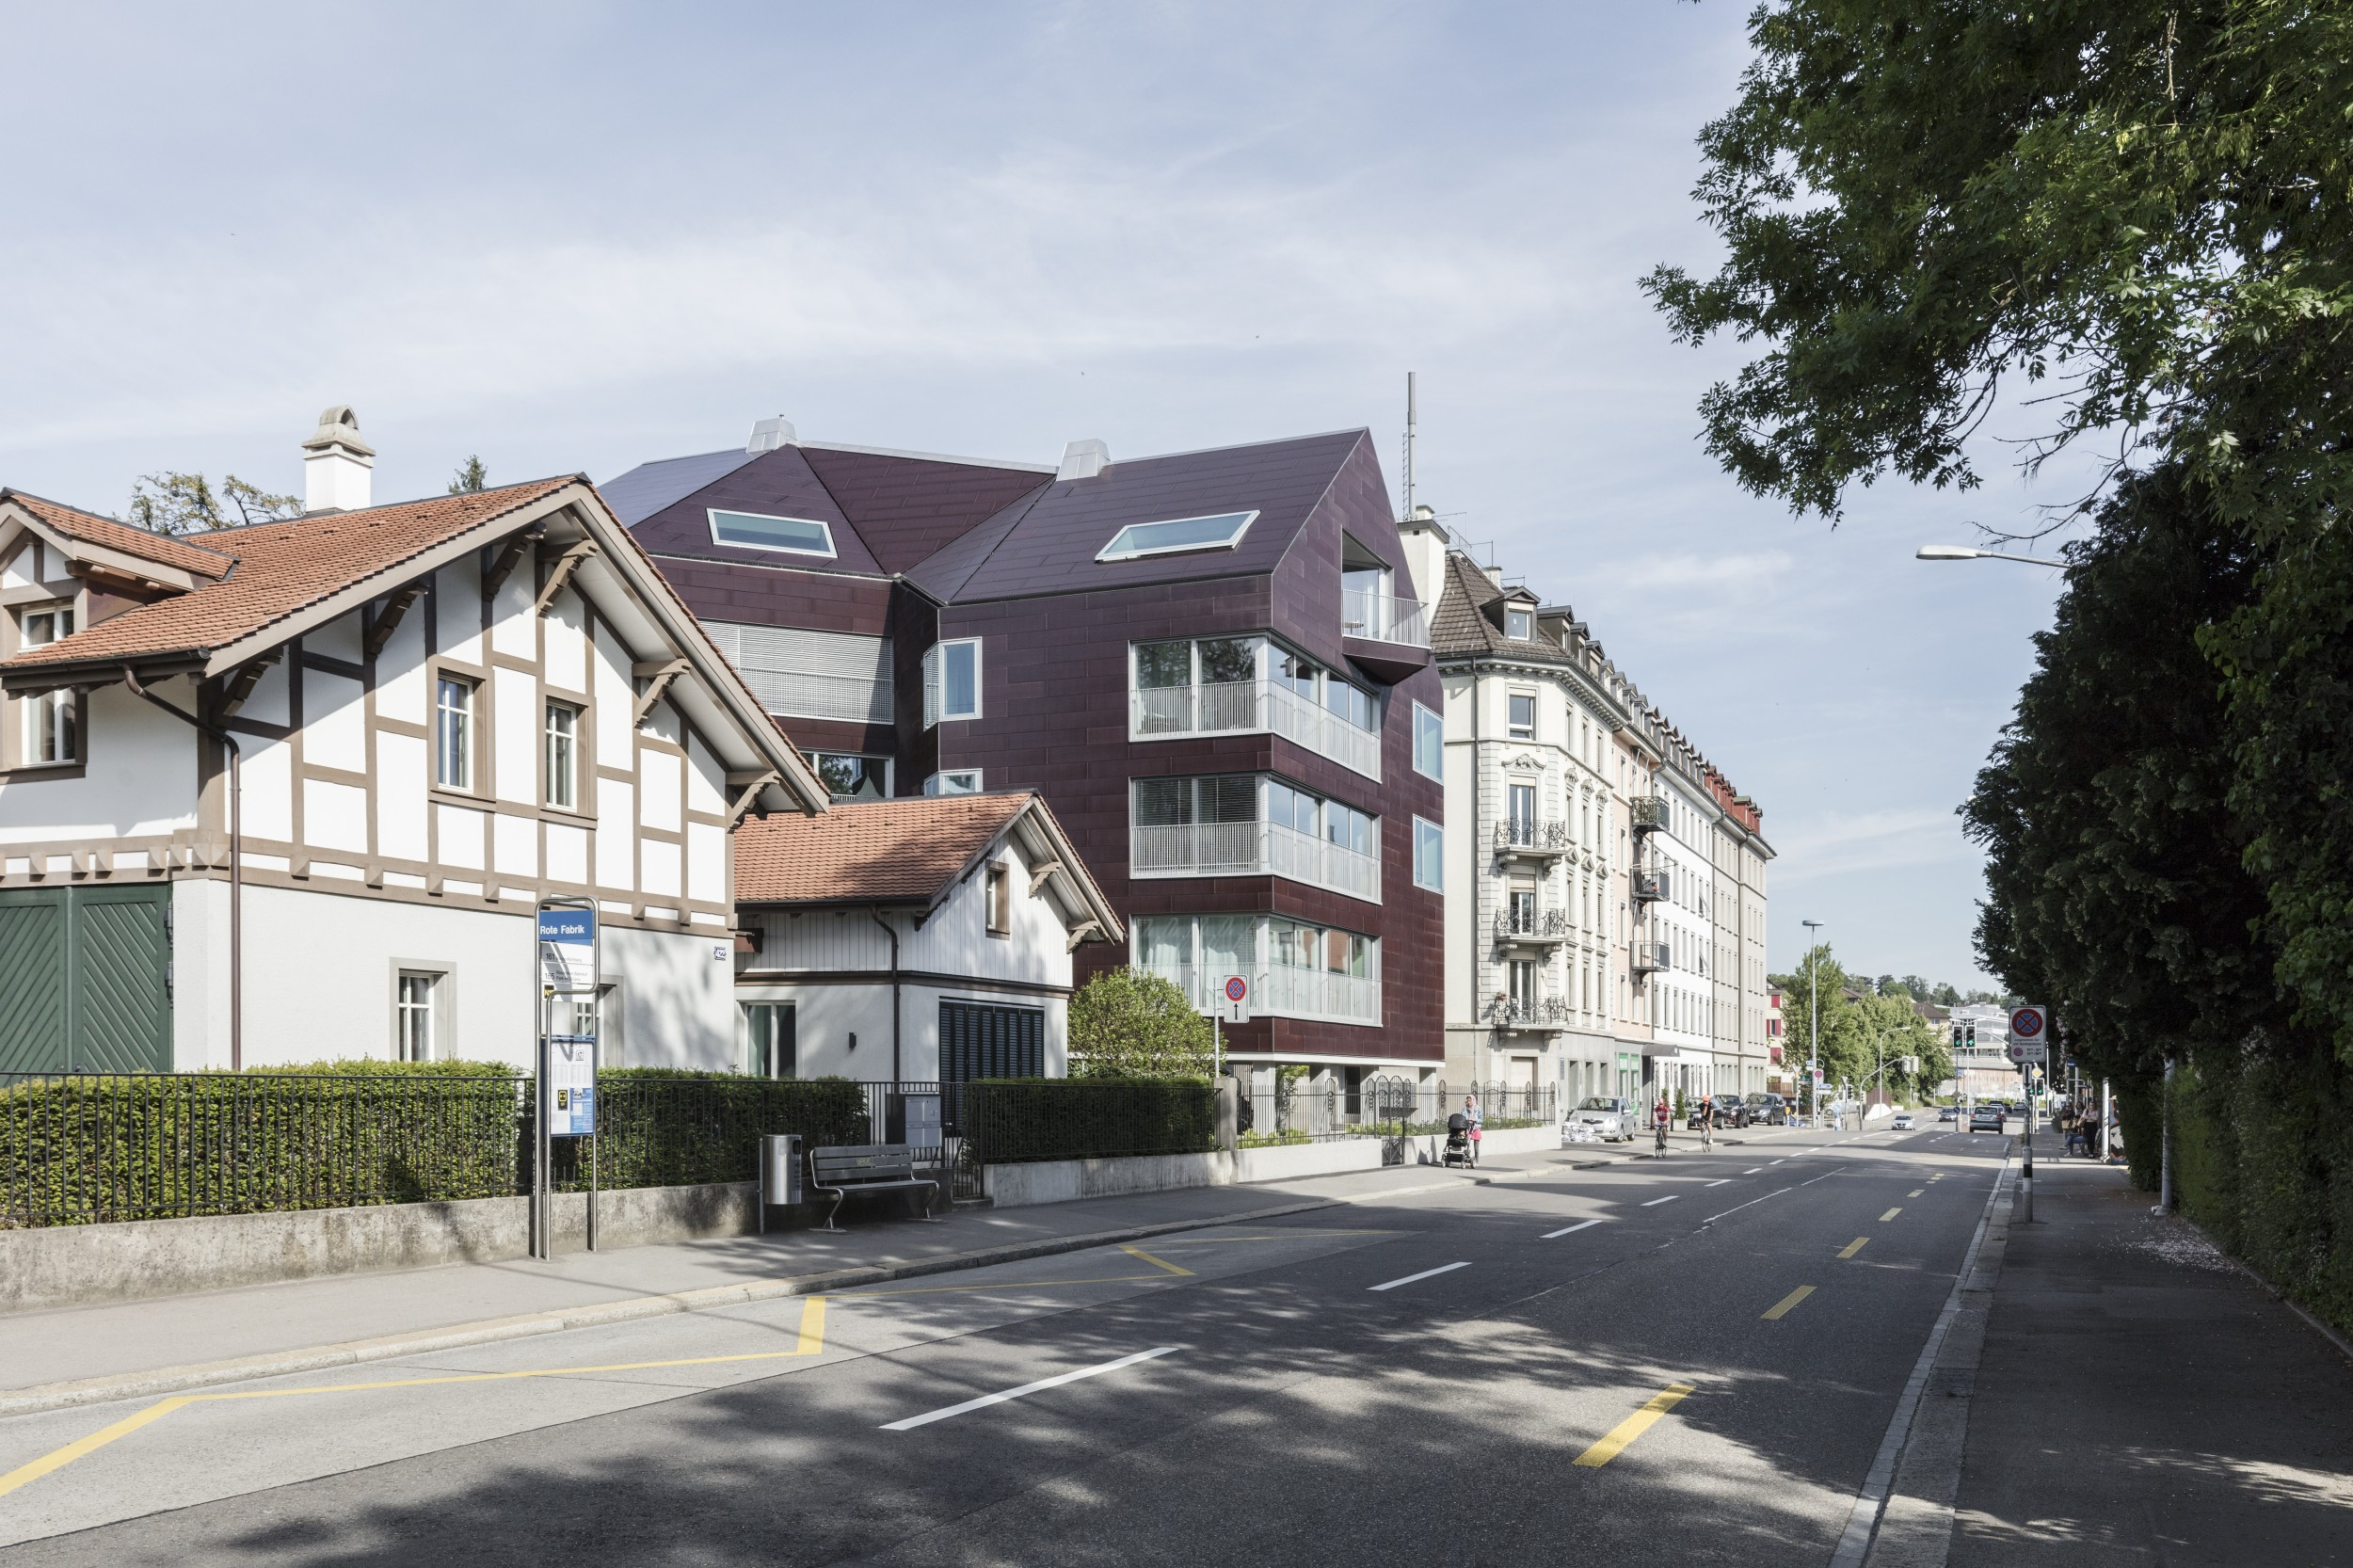 Good demonstration projects, such as this building in Zurich with an active facade, are needed in order to enthuse the population about photovoltaic systems on buildings.